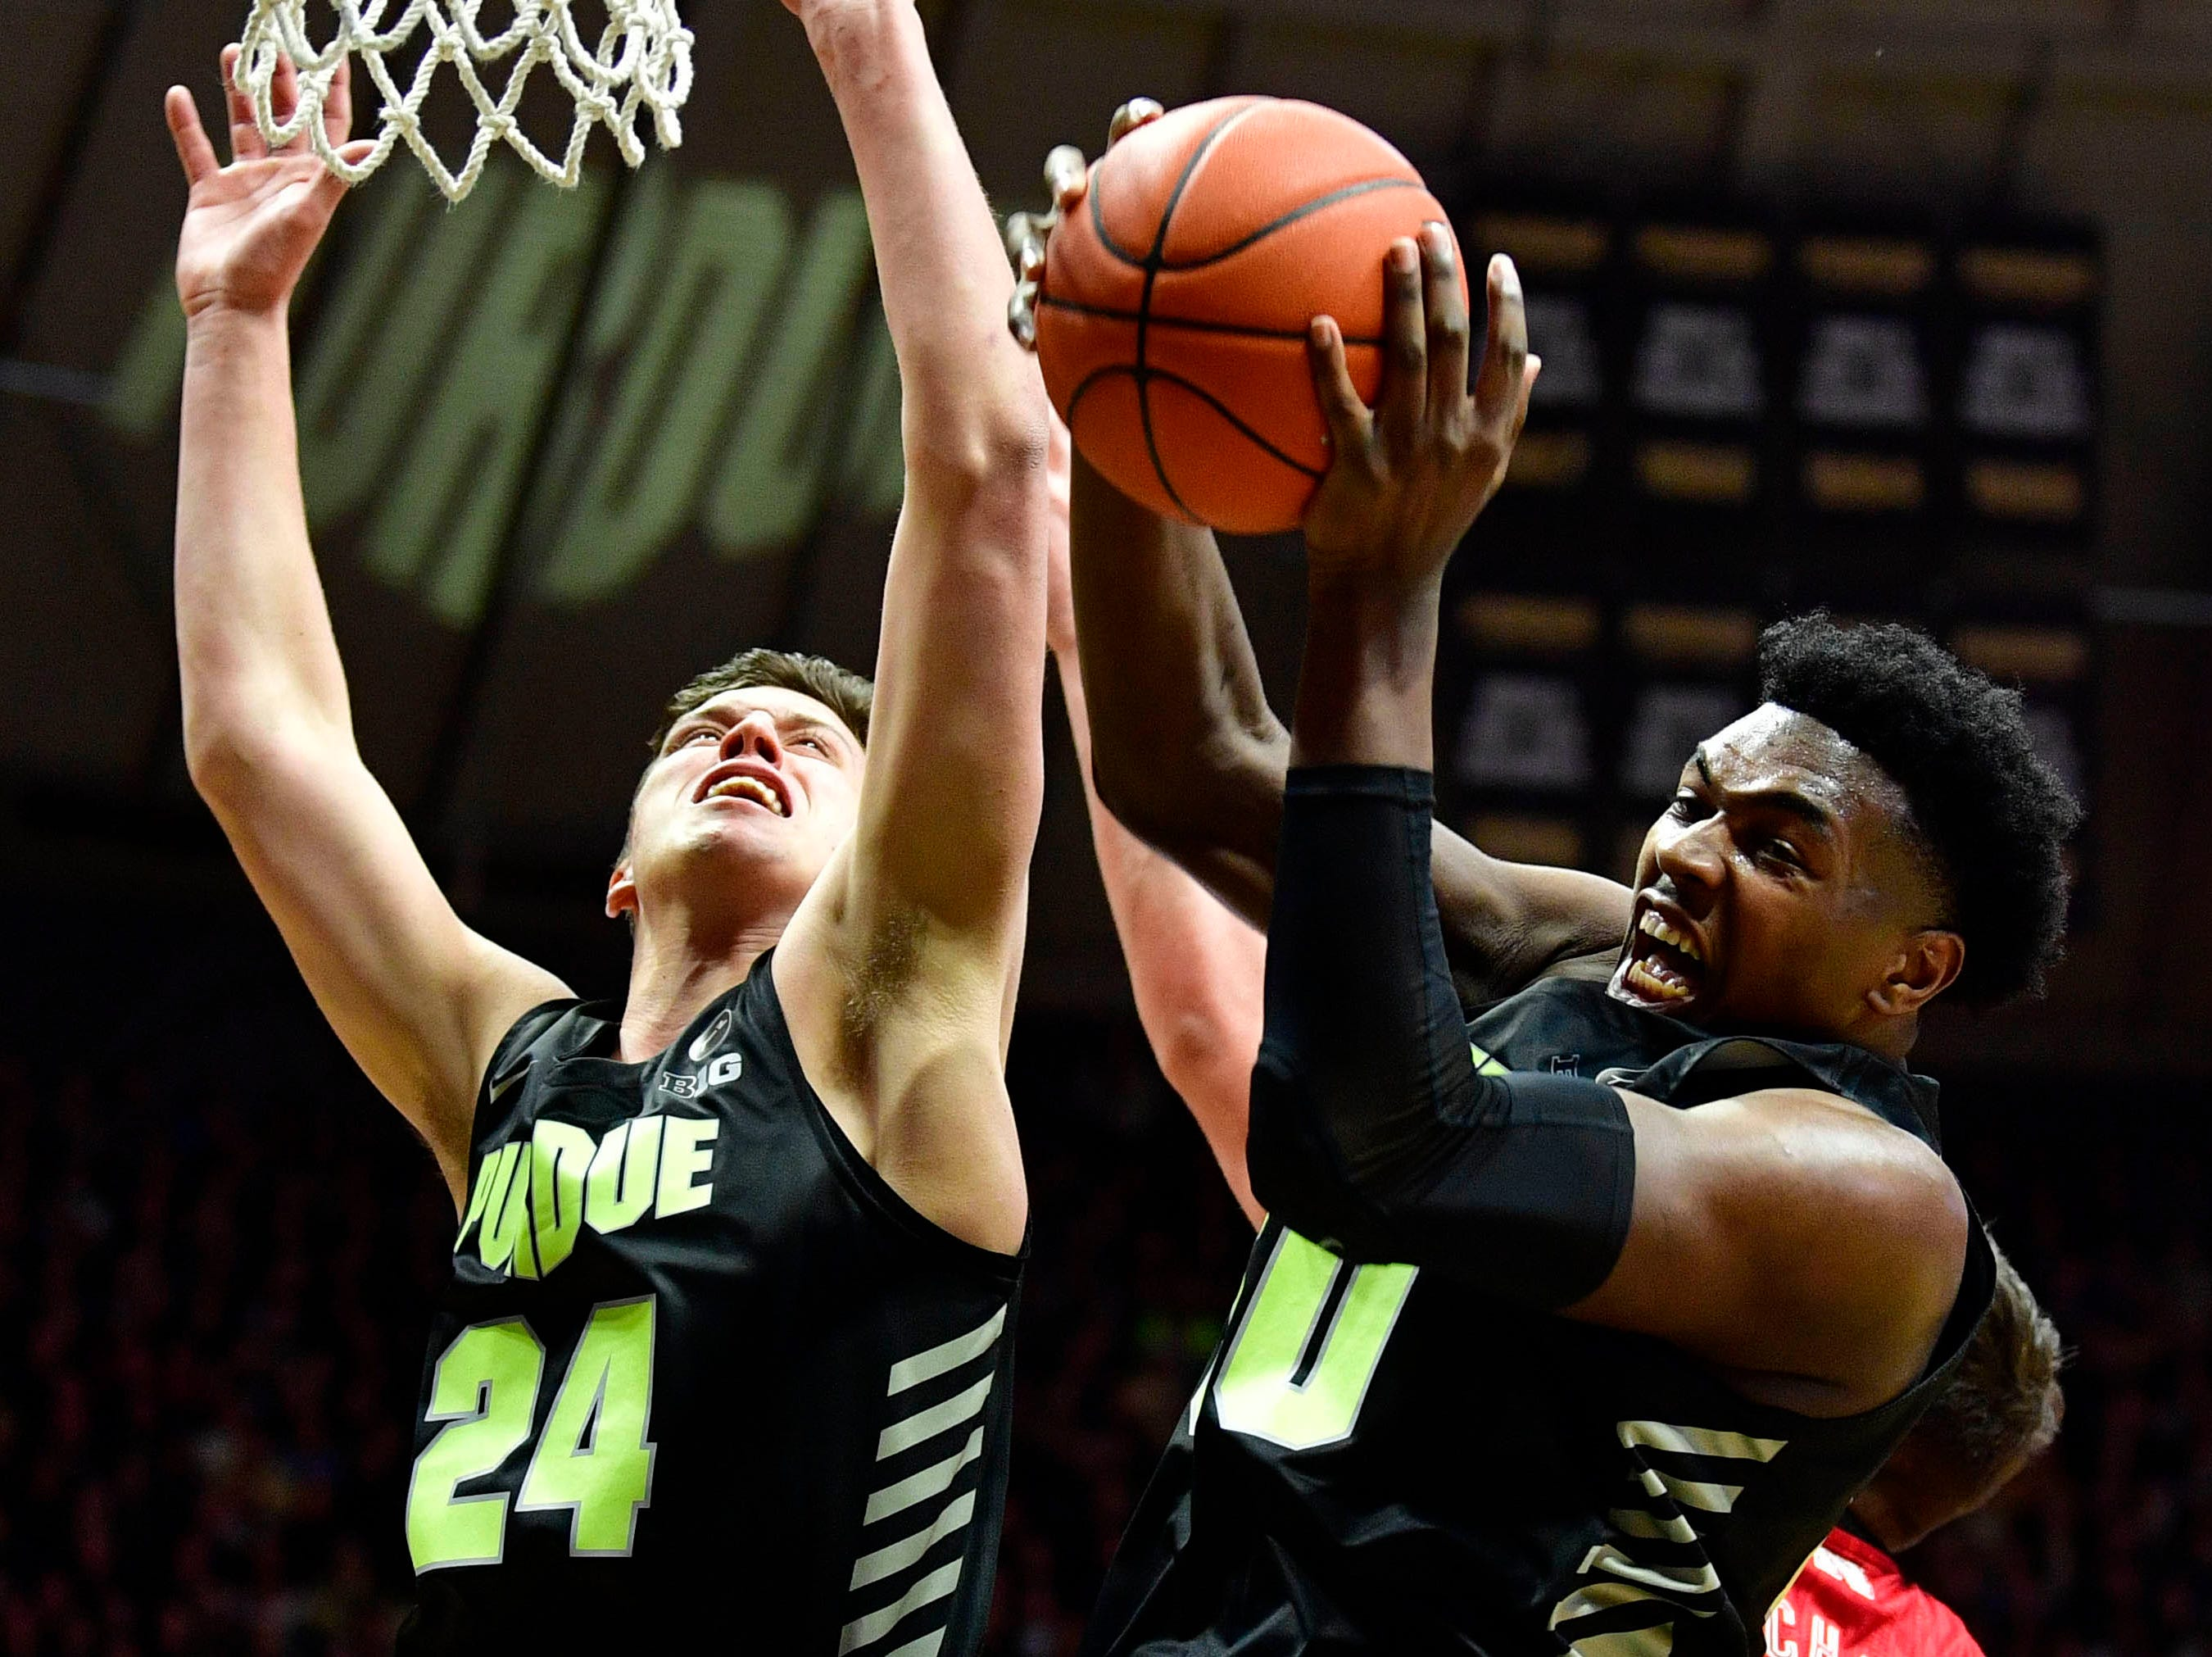 Purdue Boilermakers forward Trevion Williams (50) grabs a rebound after a shot by the Nebraska Cornhuskers during the first half of the game at Mackey Arena.